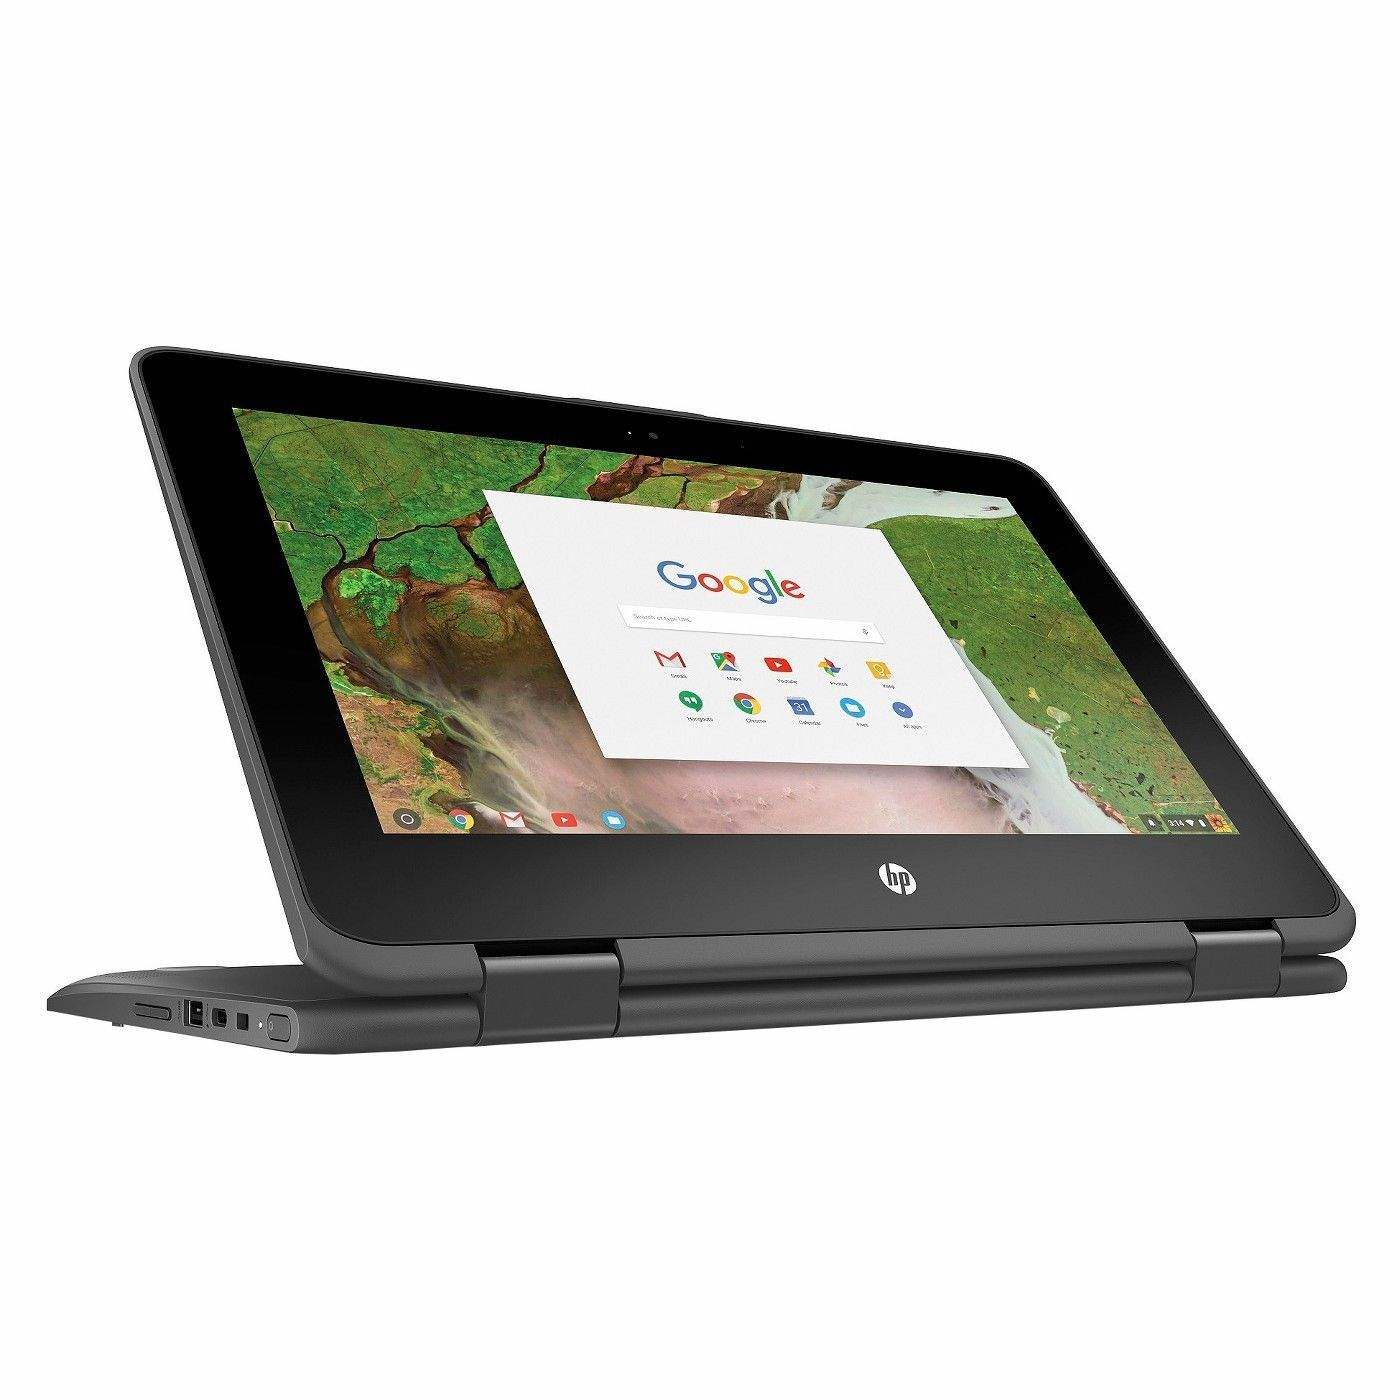 "11.6"" HP Chromebook x360 Touch (Refurb, 11-ae027nr) $135.99 + Free Shipping w/ eBay Coupon"